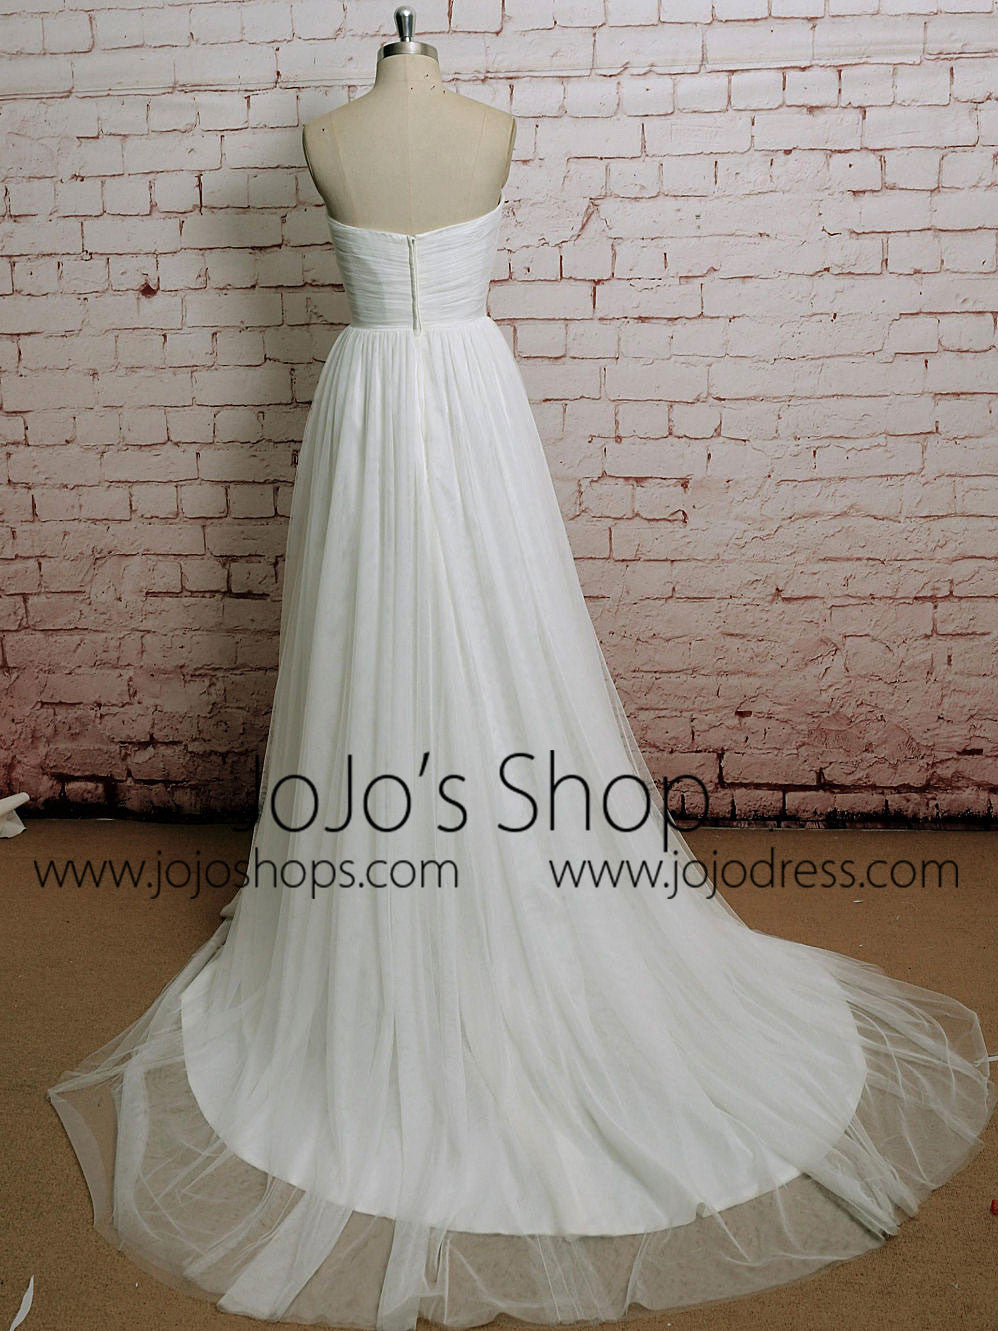 Strapless Chiffon A-line Wedding Dress with Sweetheart Neckline | EE3001